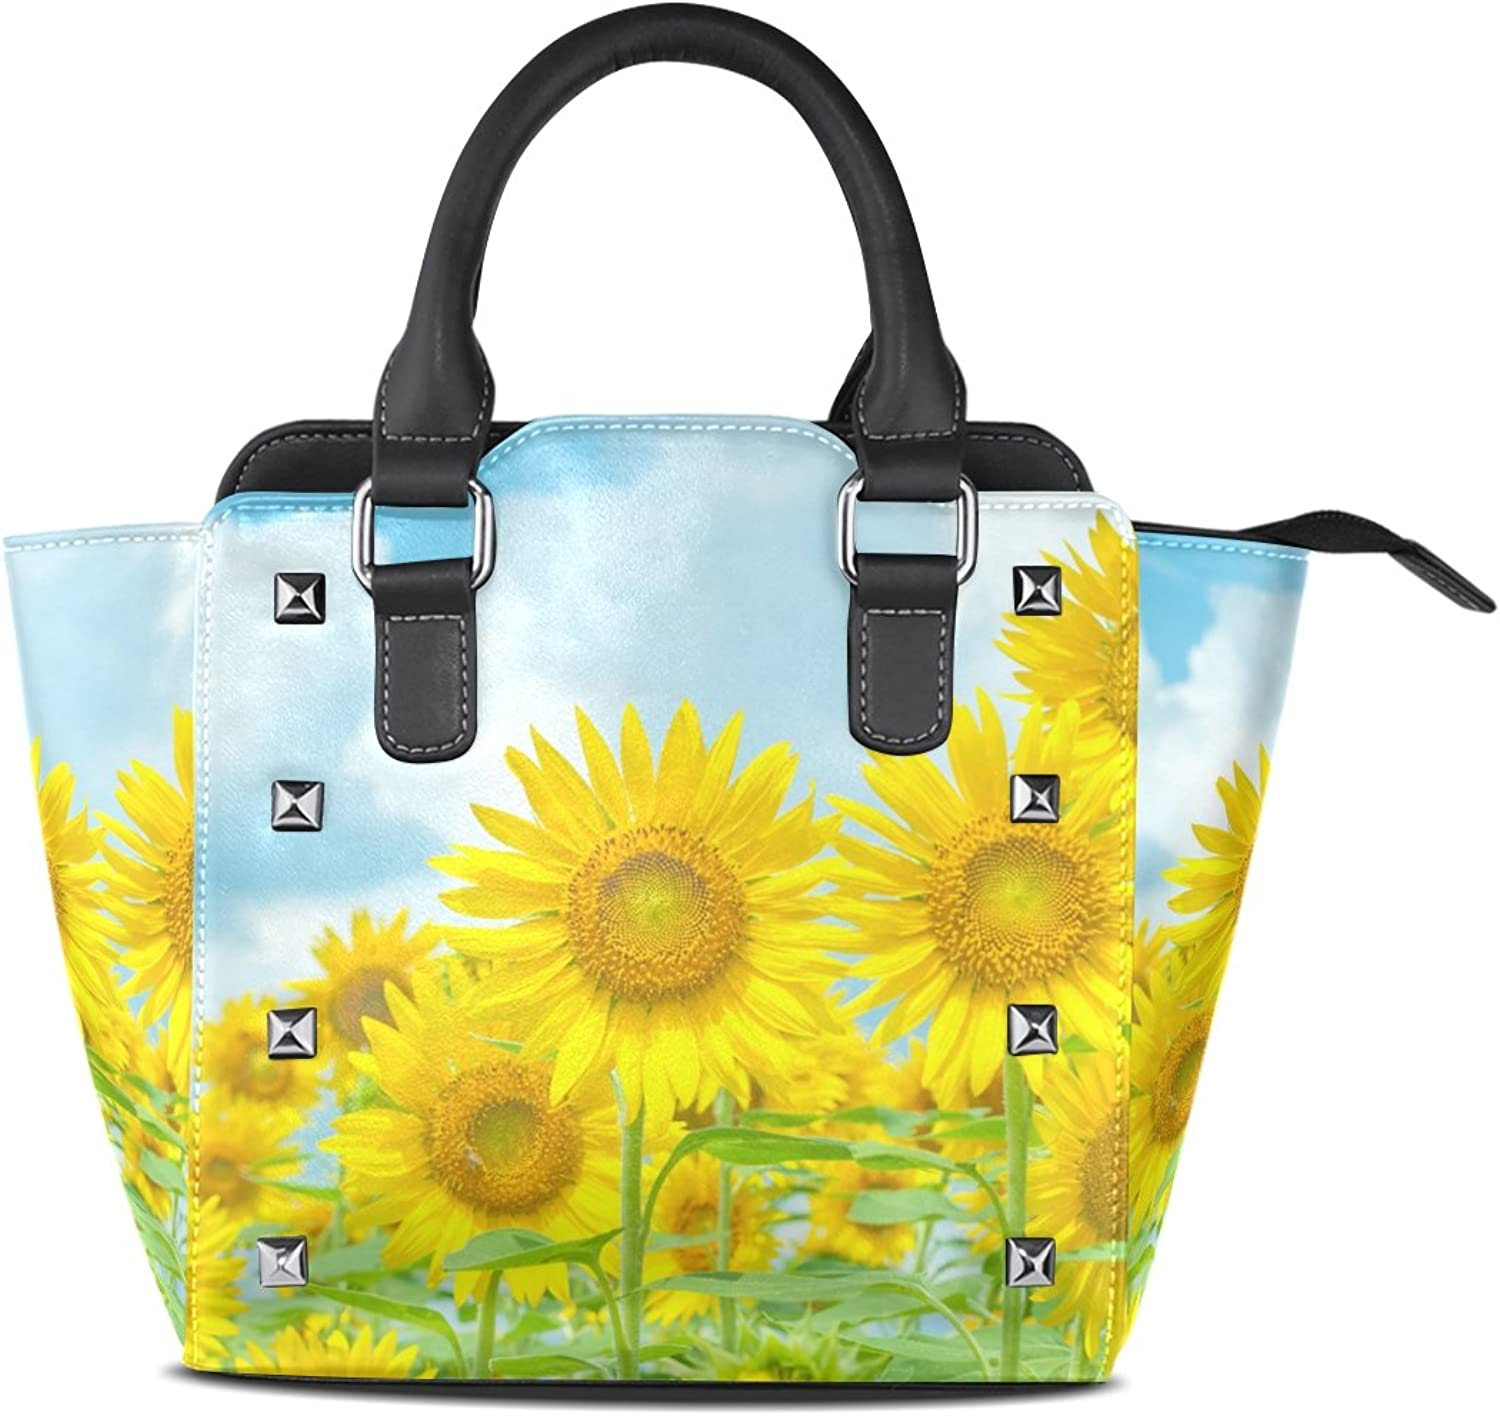 Sunlome Retro Sunflowers Print Women's Leather Tote Shoulder Bags Handbags